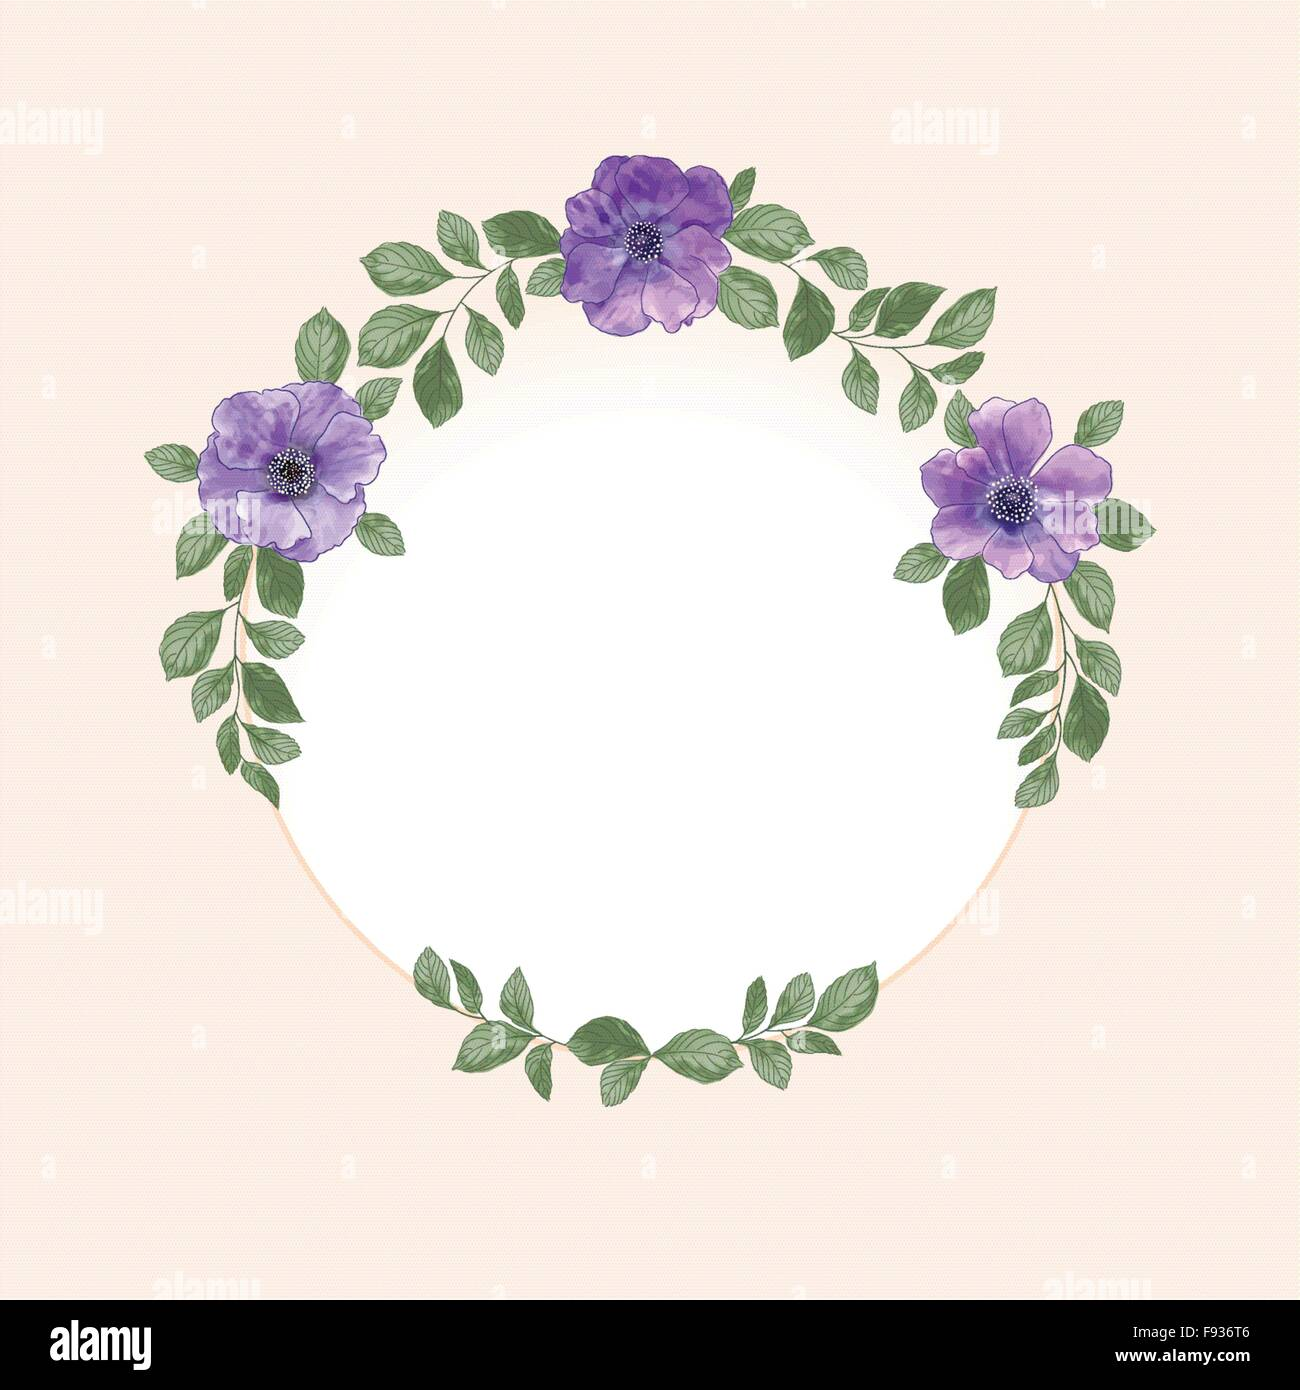 Vector Watercolor Round Flower Frame Hand Draw Romantic Floral Border